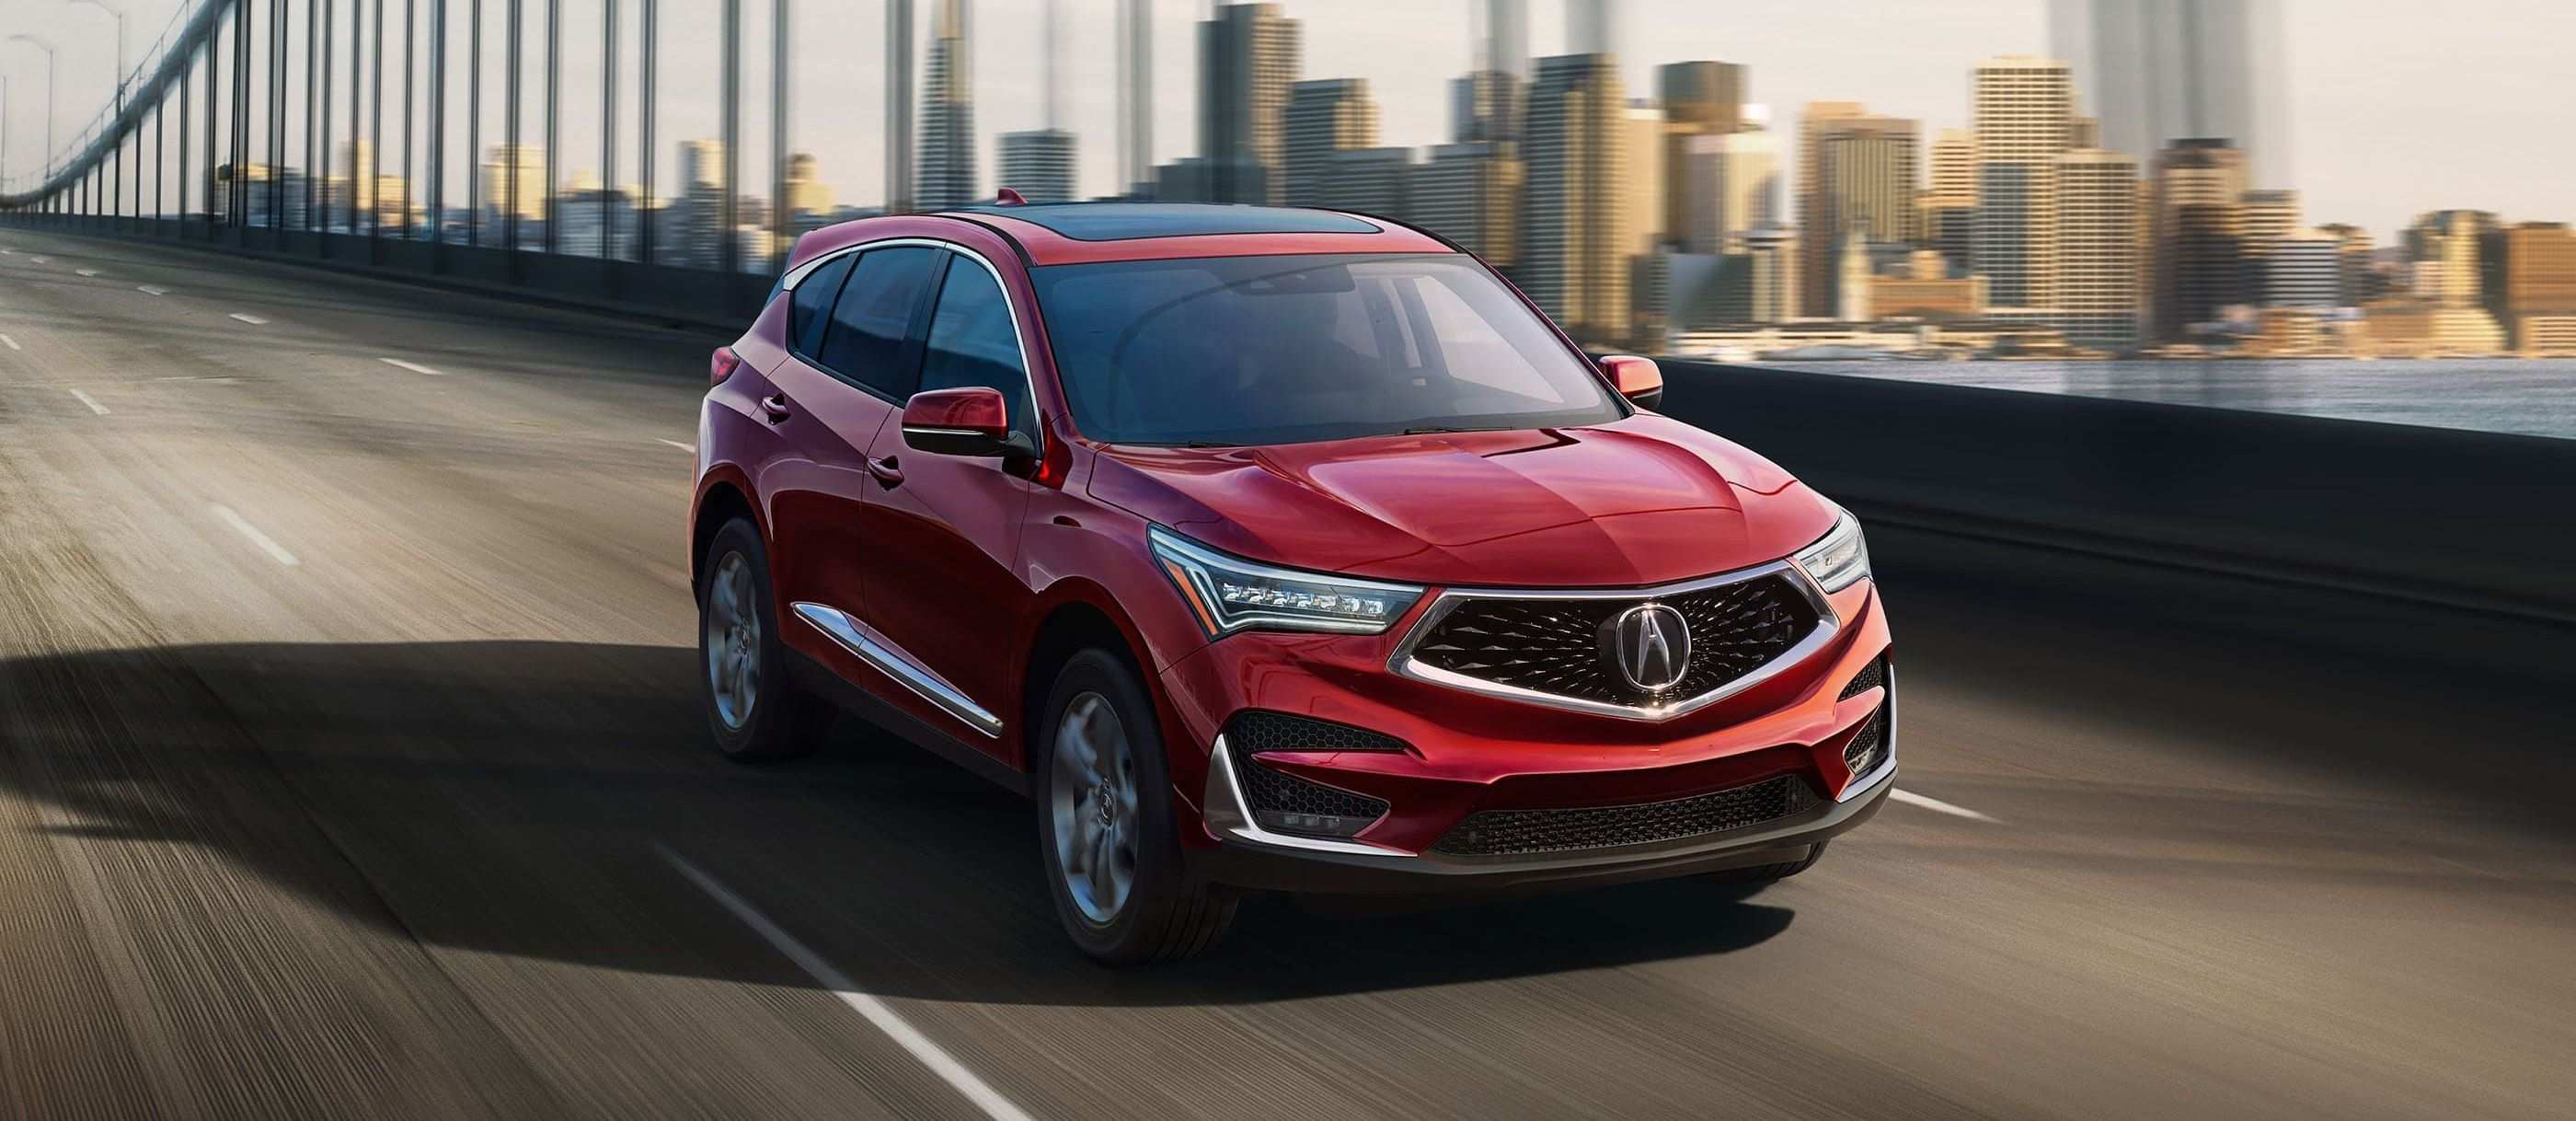 51 Best Review When Is The 2020 Acura Rdx Coming Out Review for When Is The 2020 Acura Rdx Coming Out